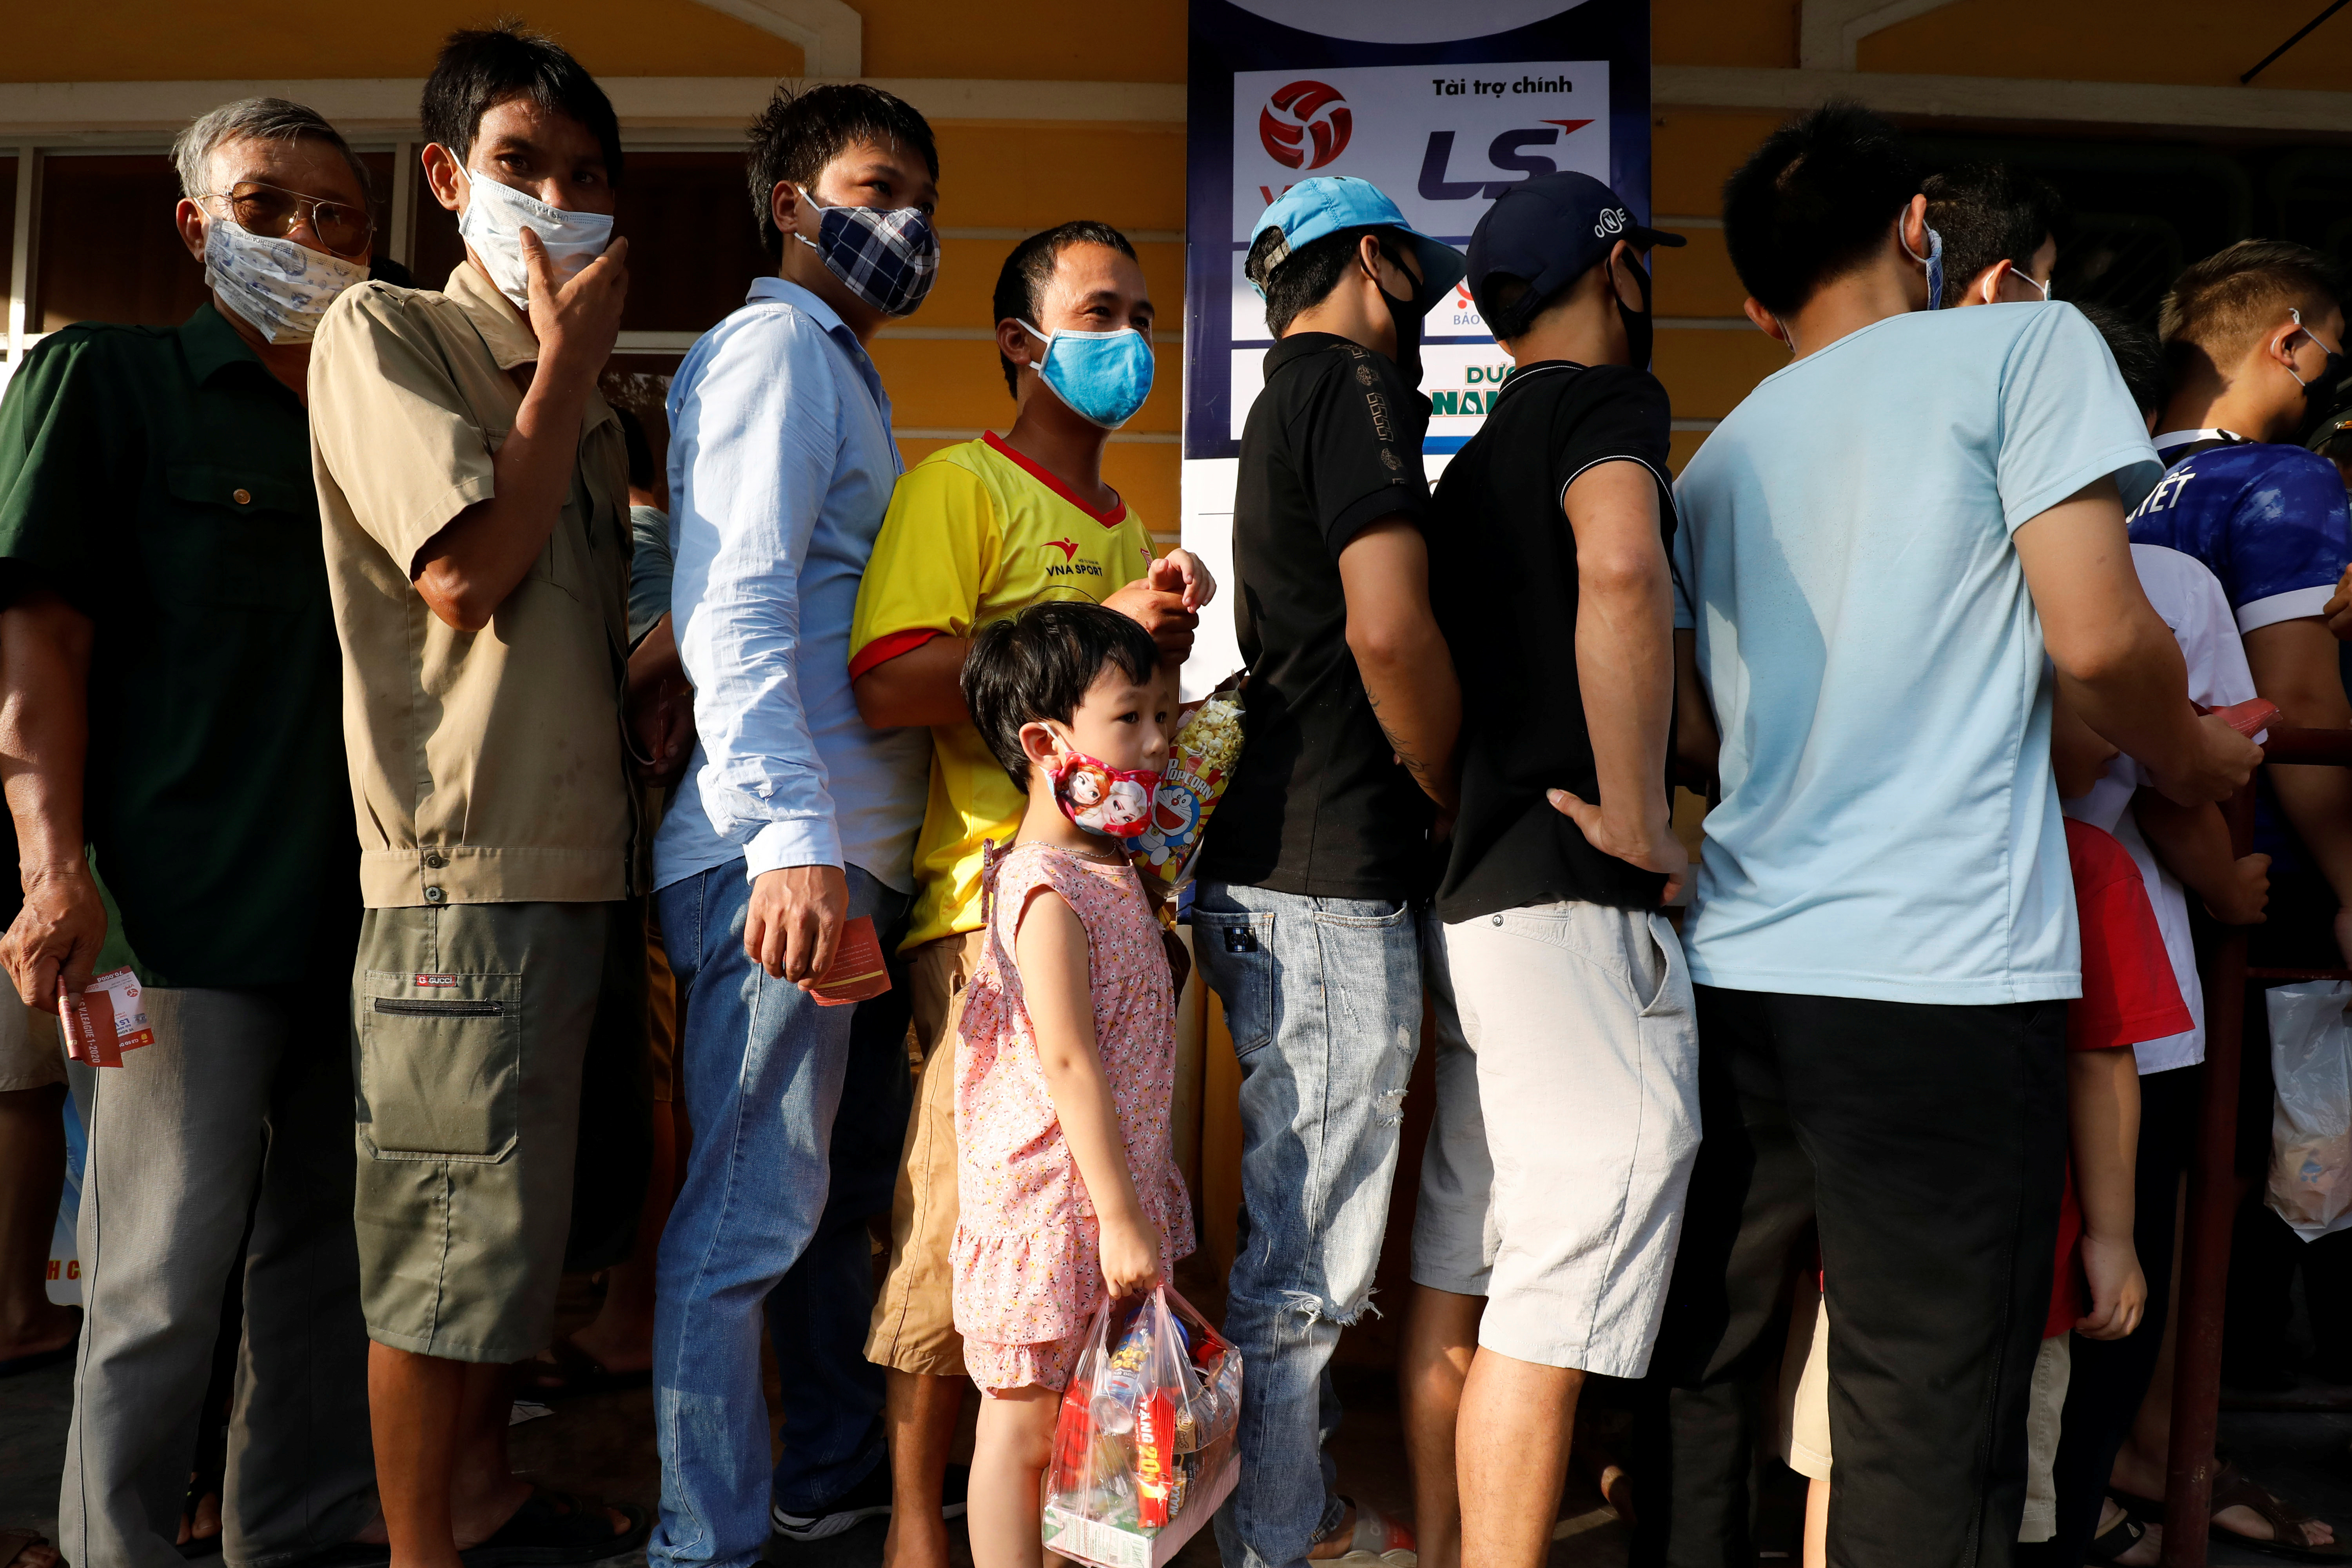 Soccer fans wearing protective masks line up before entering for a soccer match between Viettel and Duoc Nam Ha Nam Dinh of the V.League, the national soccer league, after the Government eased nationwide lockdown following the coronavirus disease (COVID-19) outbreak in Nam Dinh province, Vietnam June 5, 2020. REUTERS/Kham - RC223H98XD33